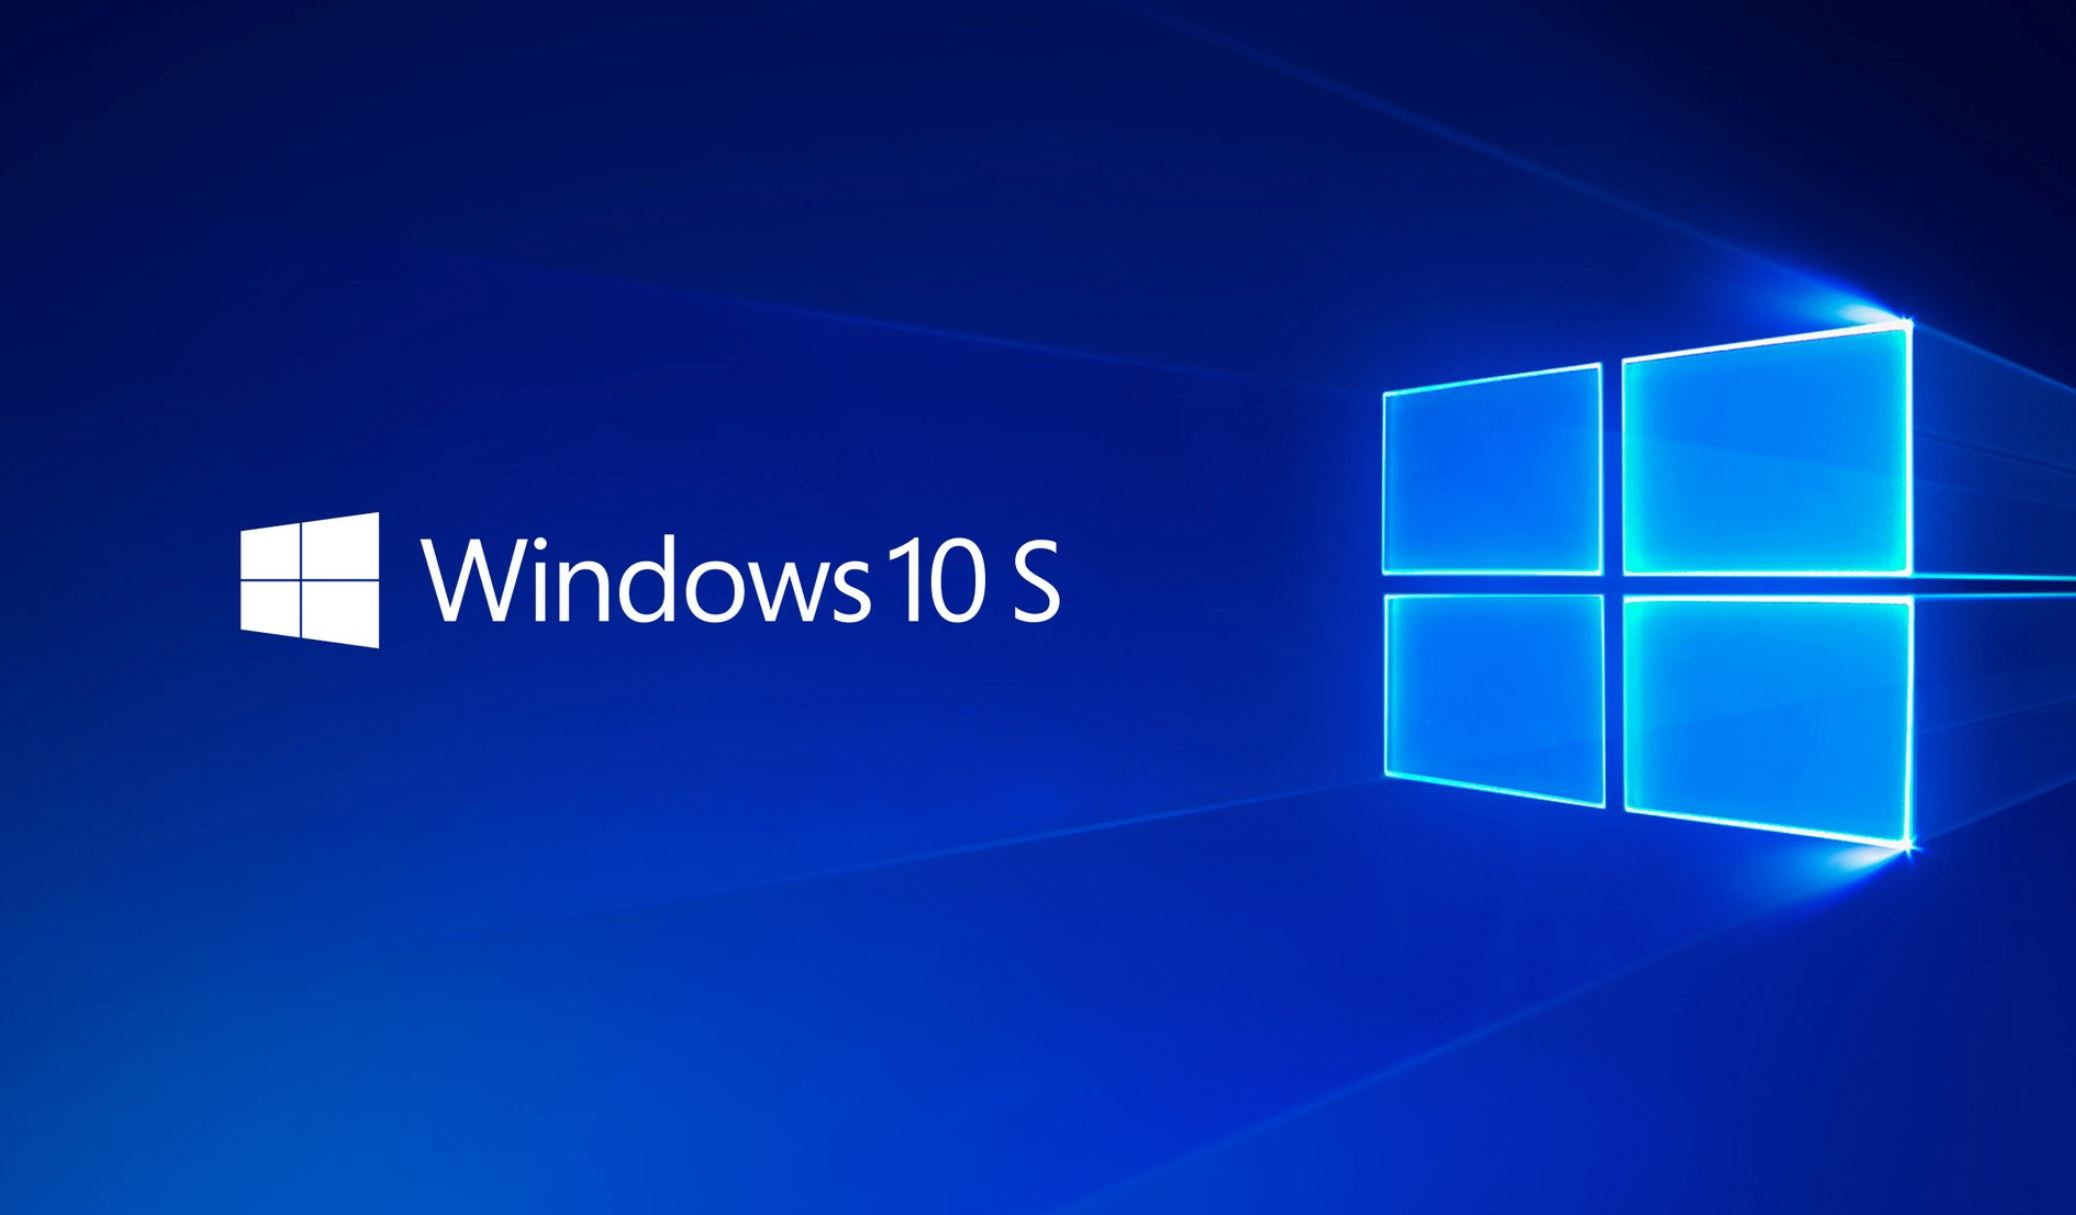 microsoft 39 s windows 10 s isn 39 t taking down chromebooks On ms windows 10